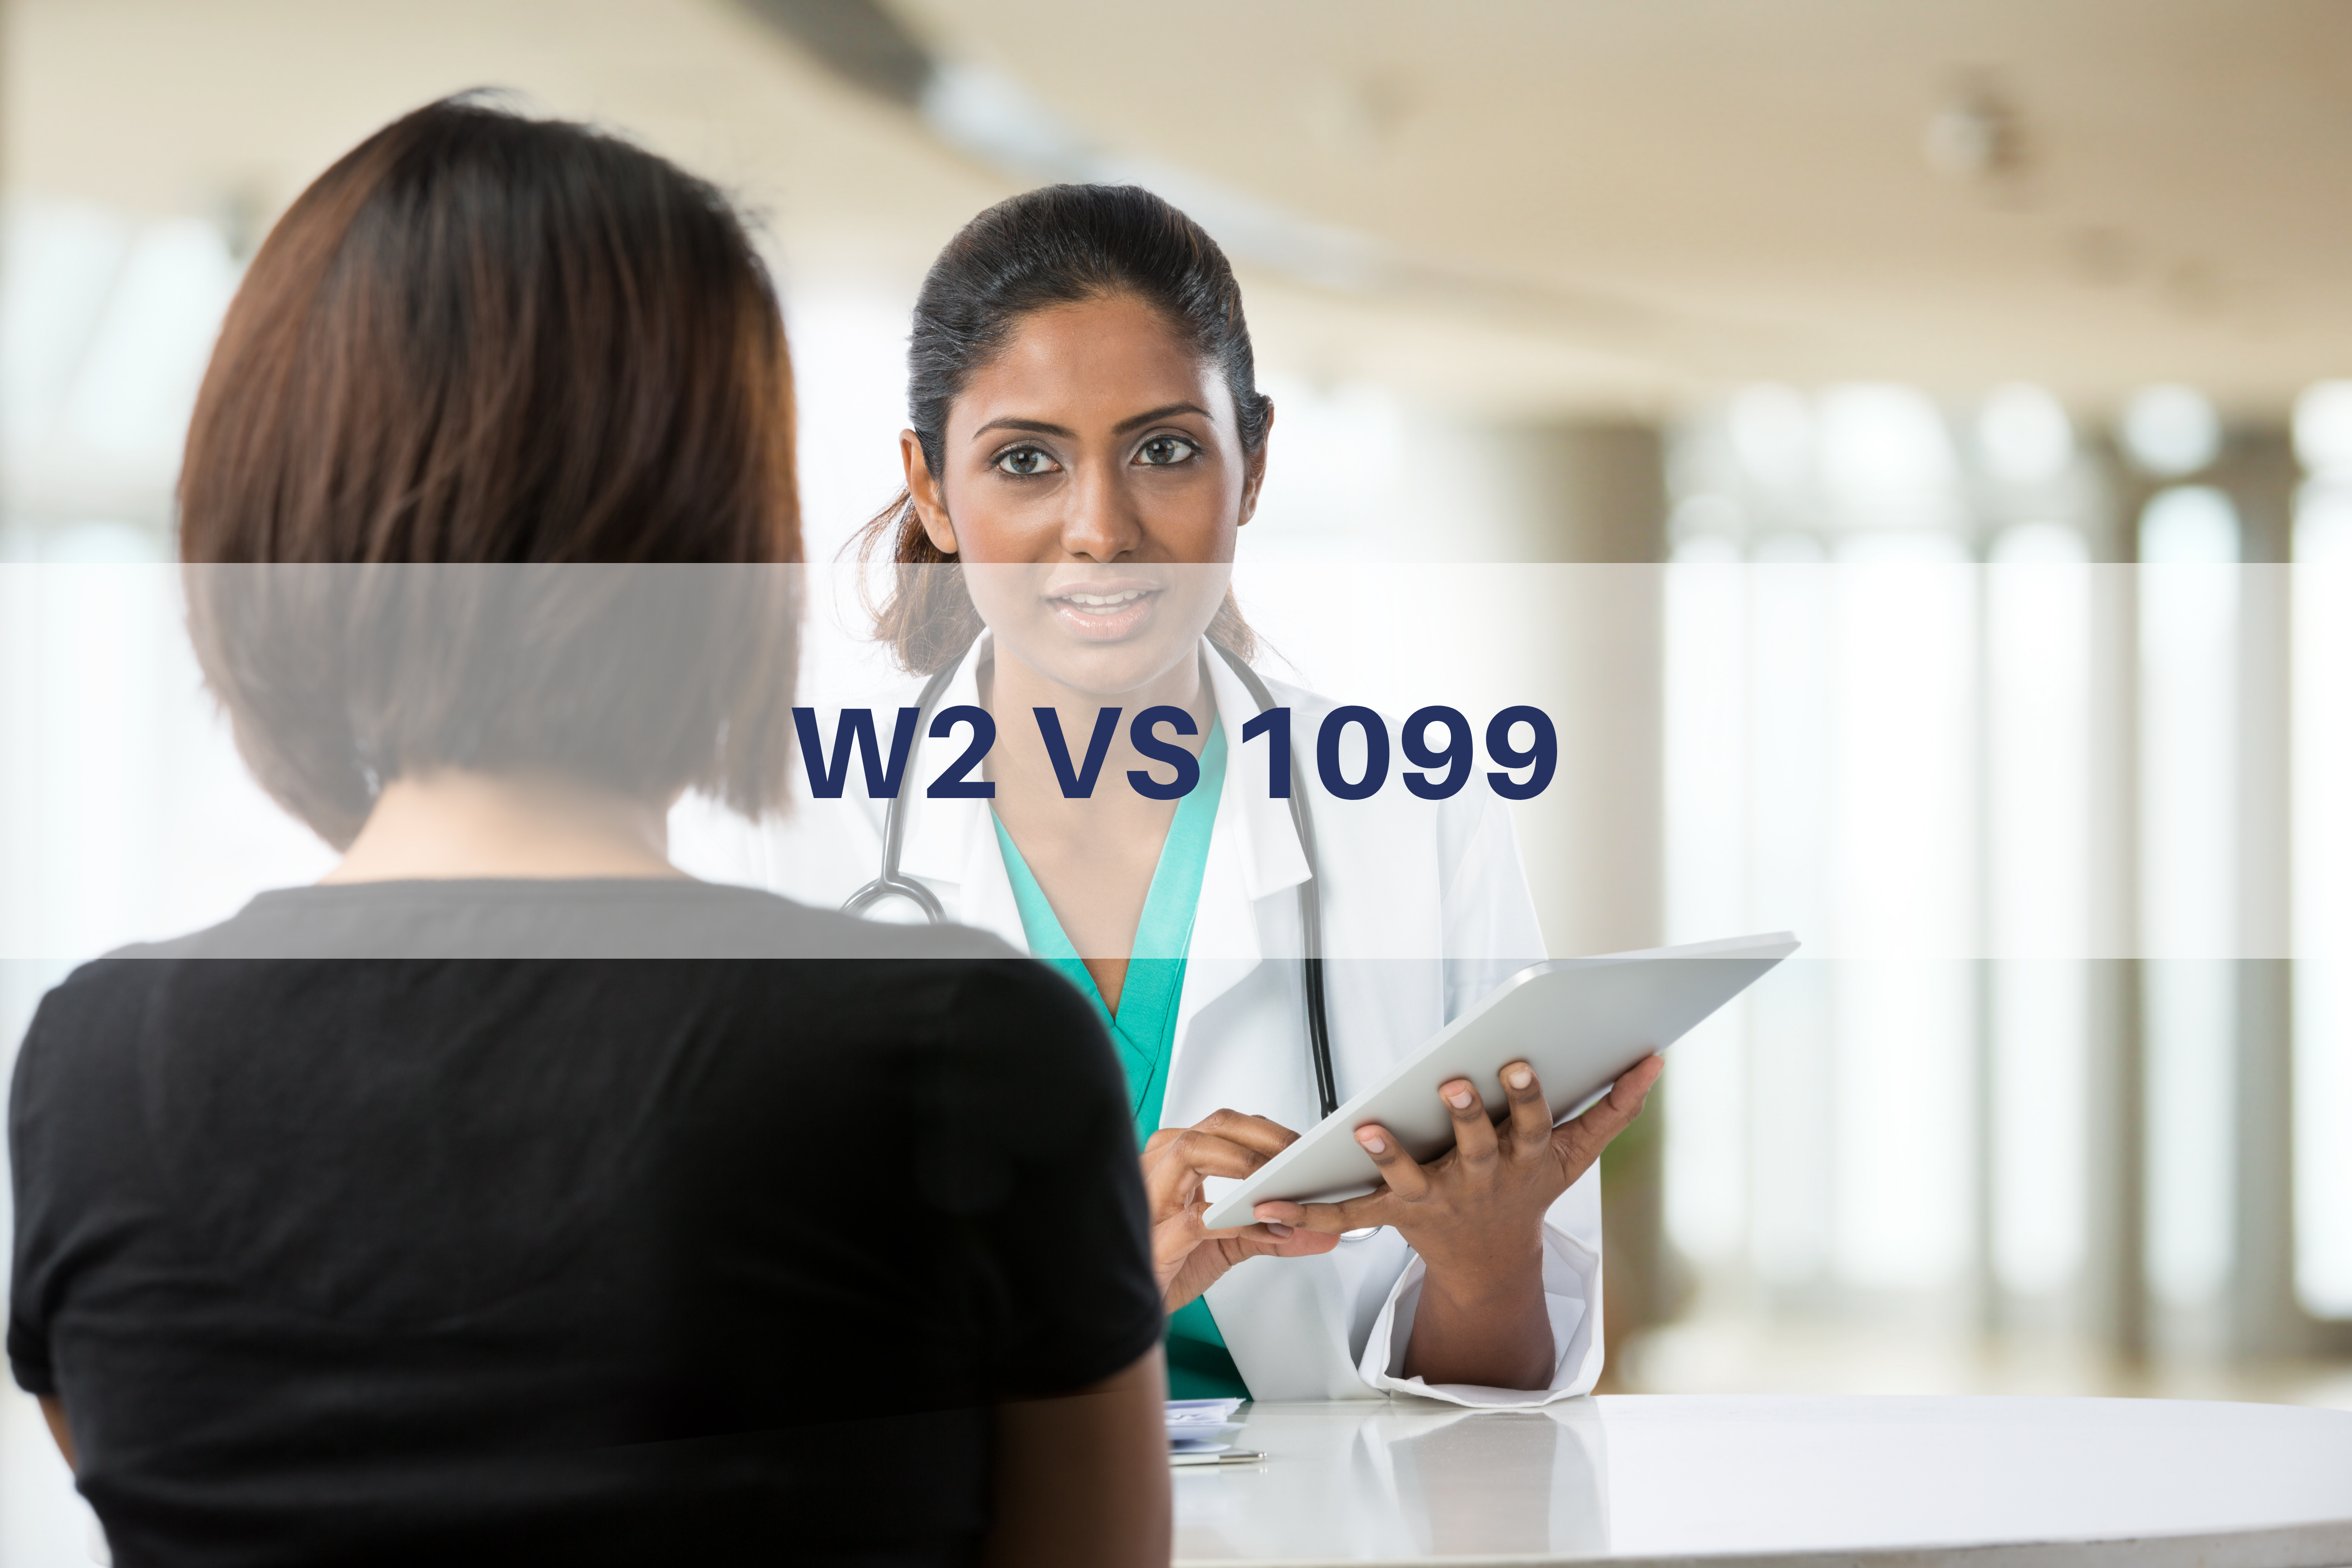 1099 vs W2 Guide for Physicians Thumbnail